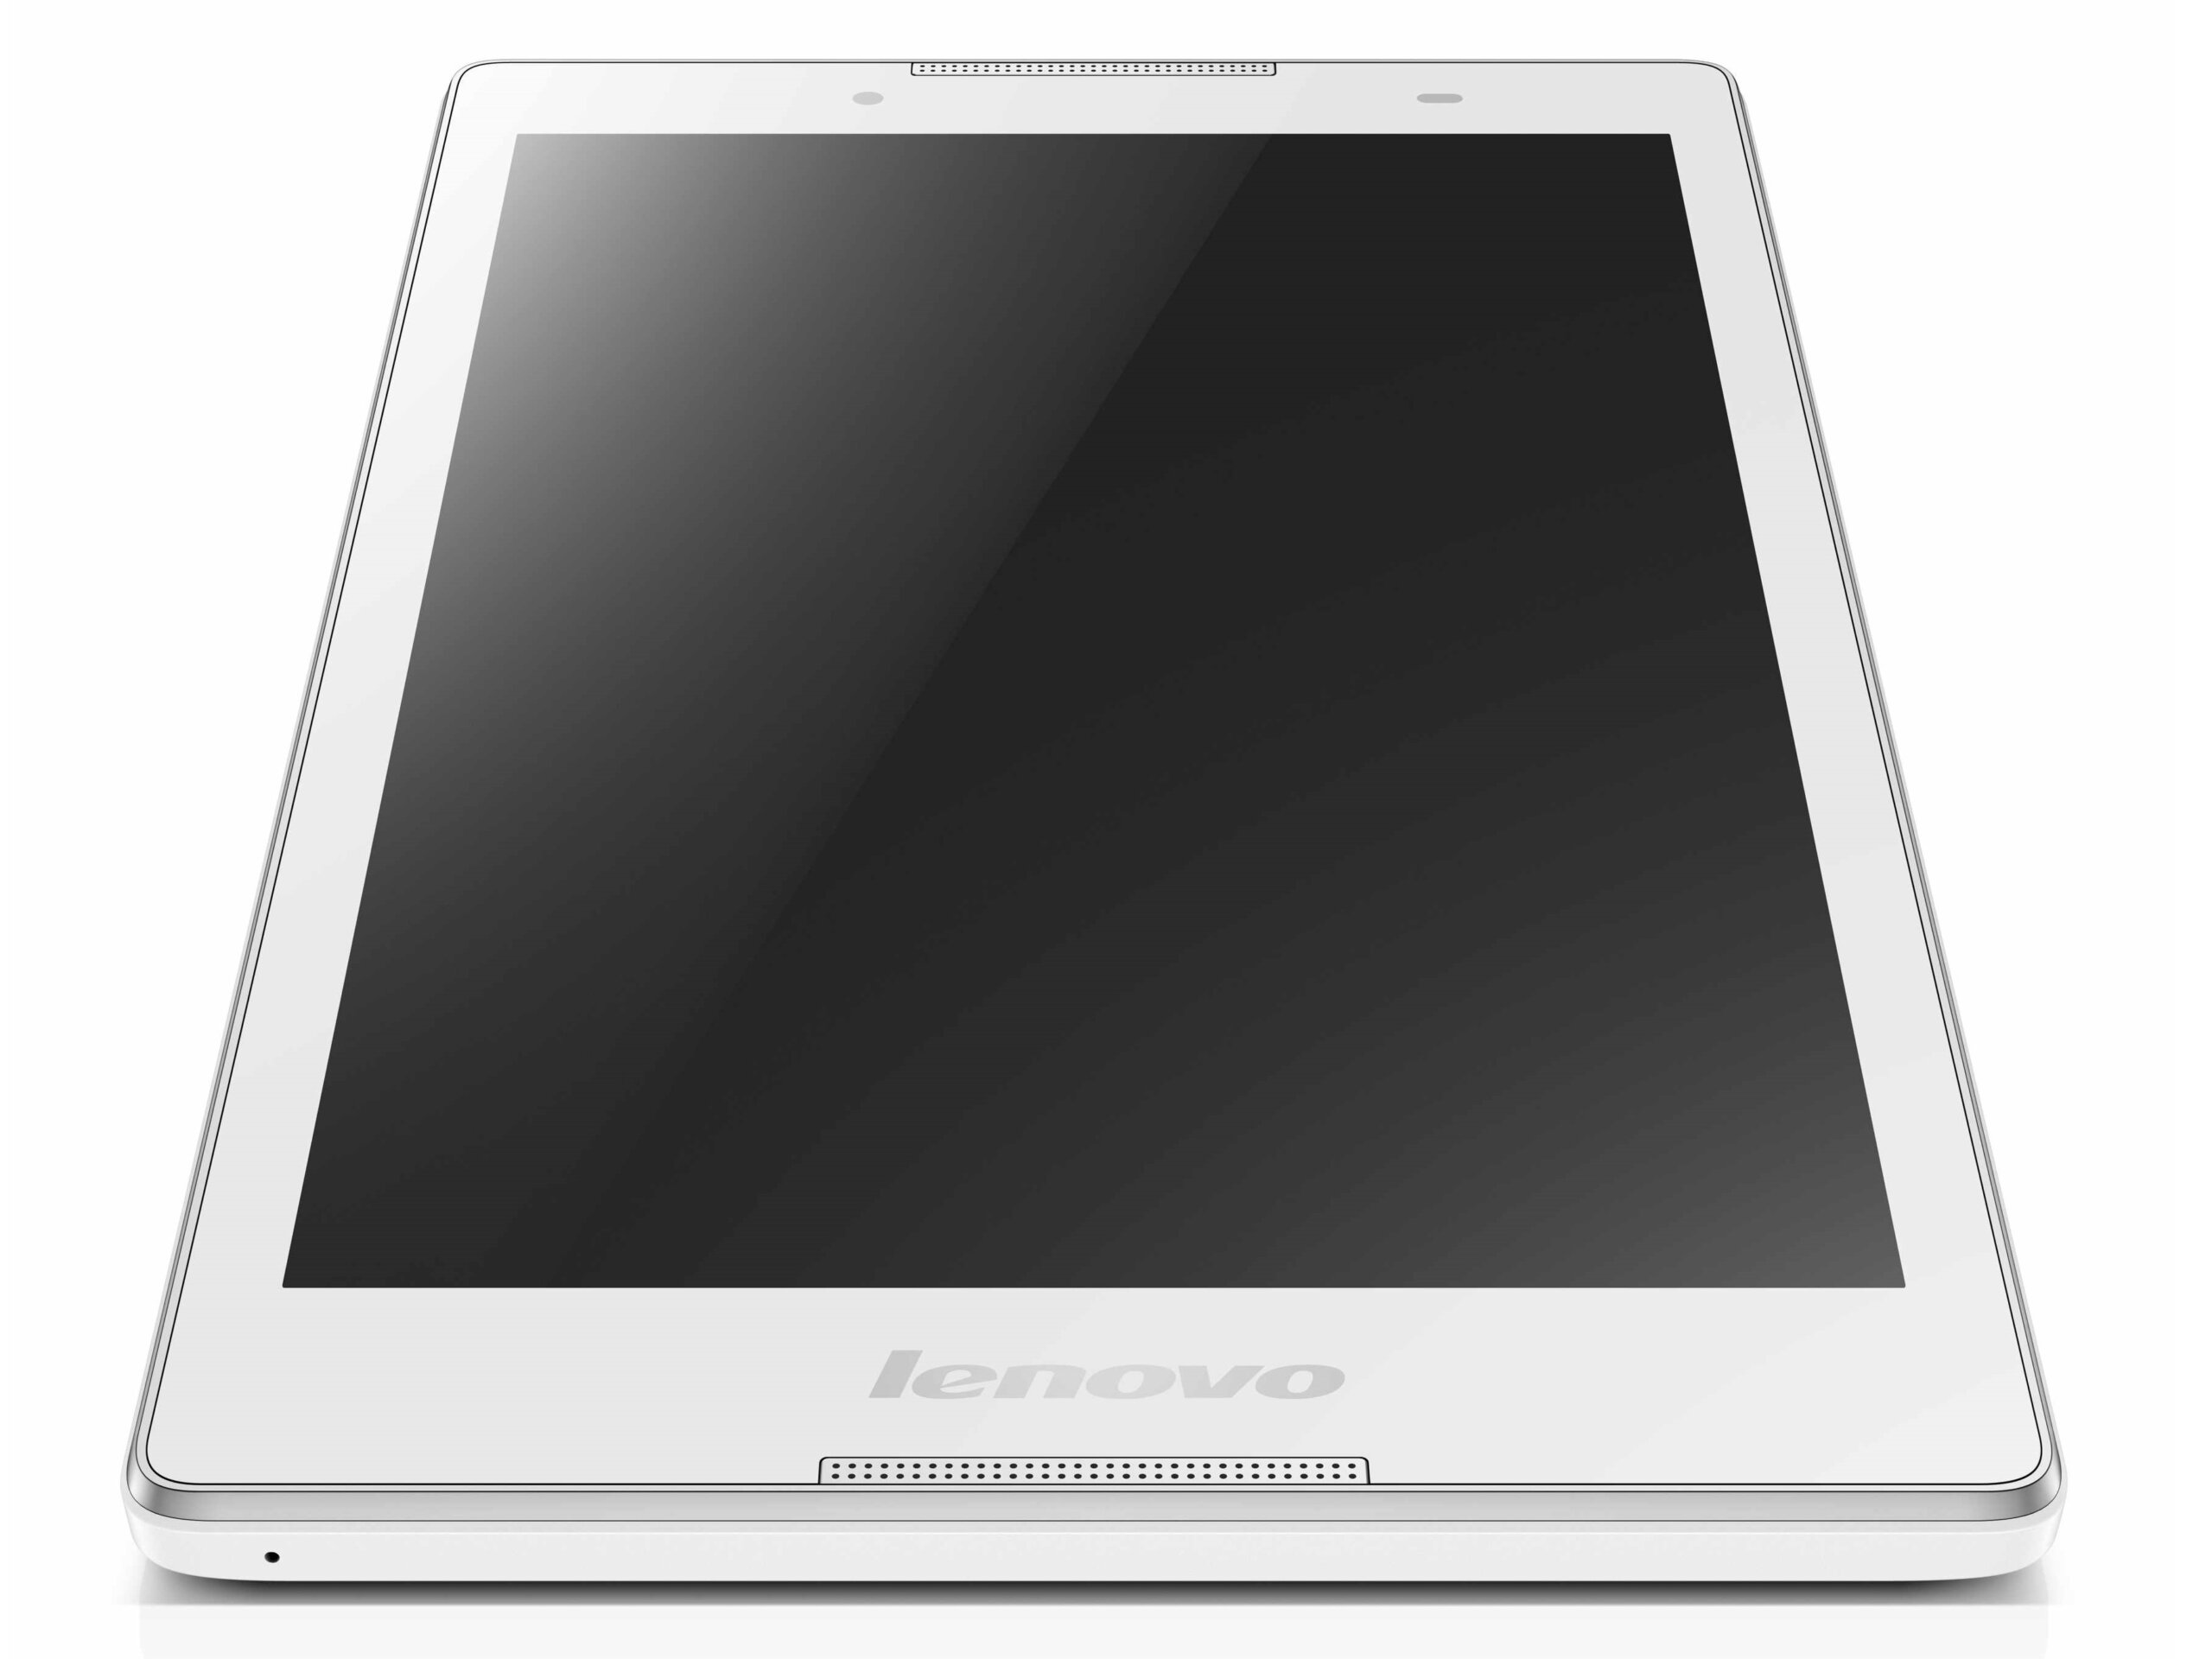 Lenovo TAB 2 A8 images and specs 3 scaled